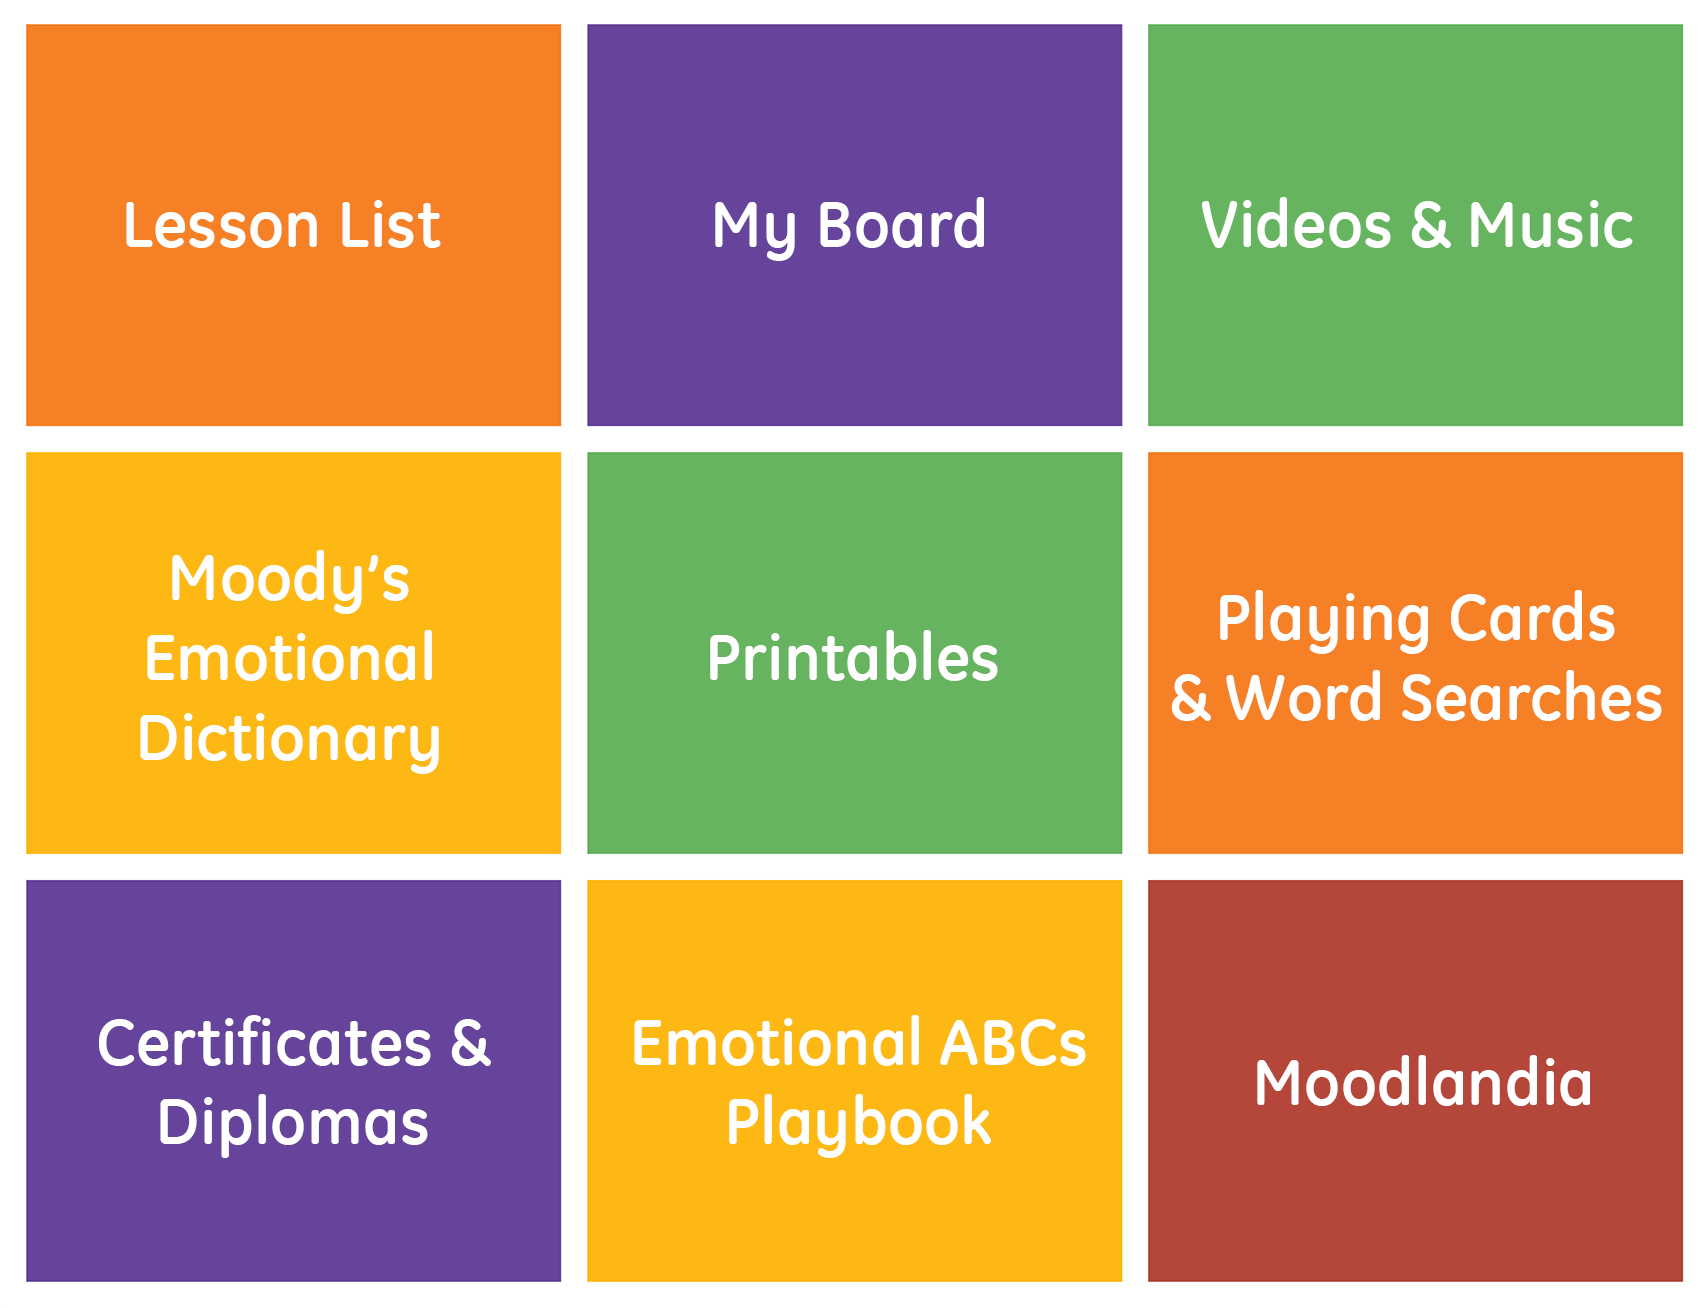 click to learn more about Emotional ABCs interactive content